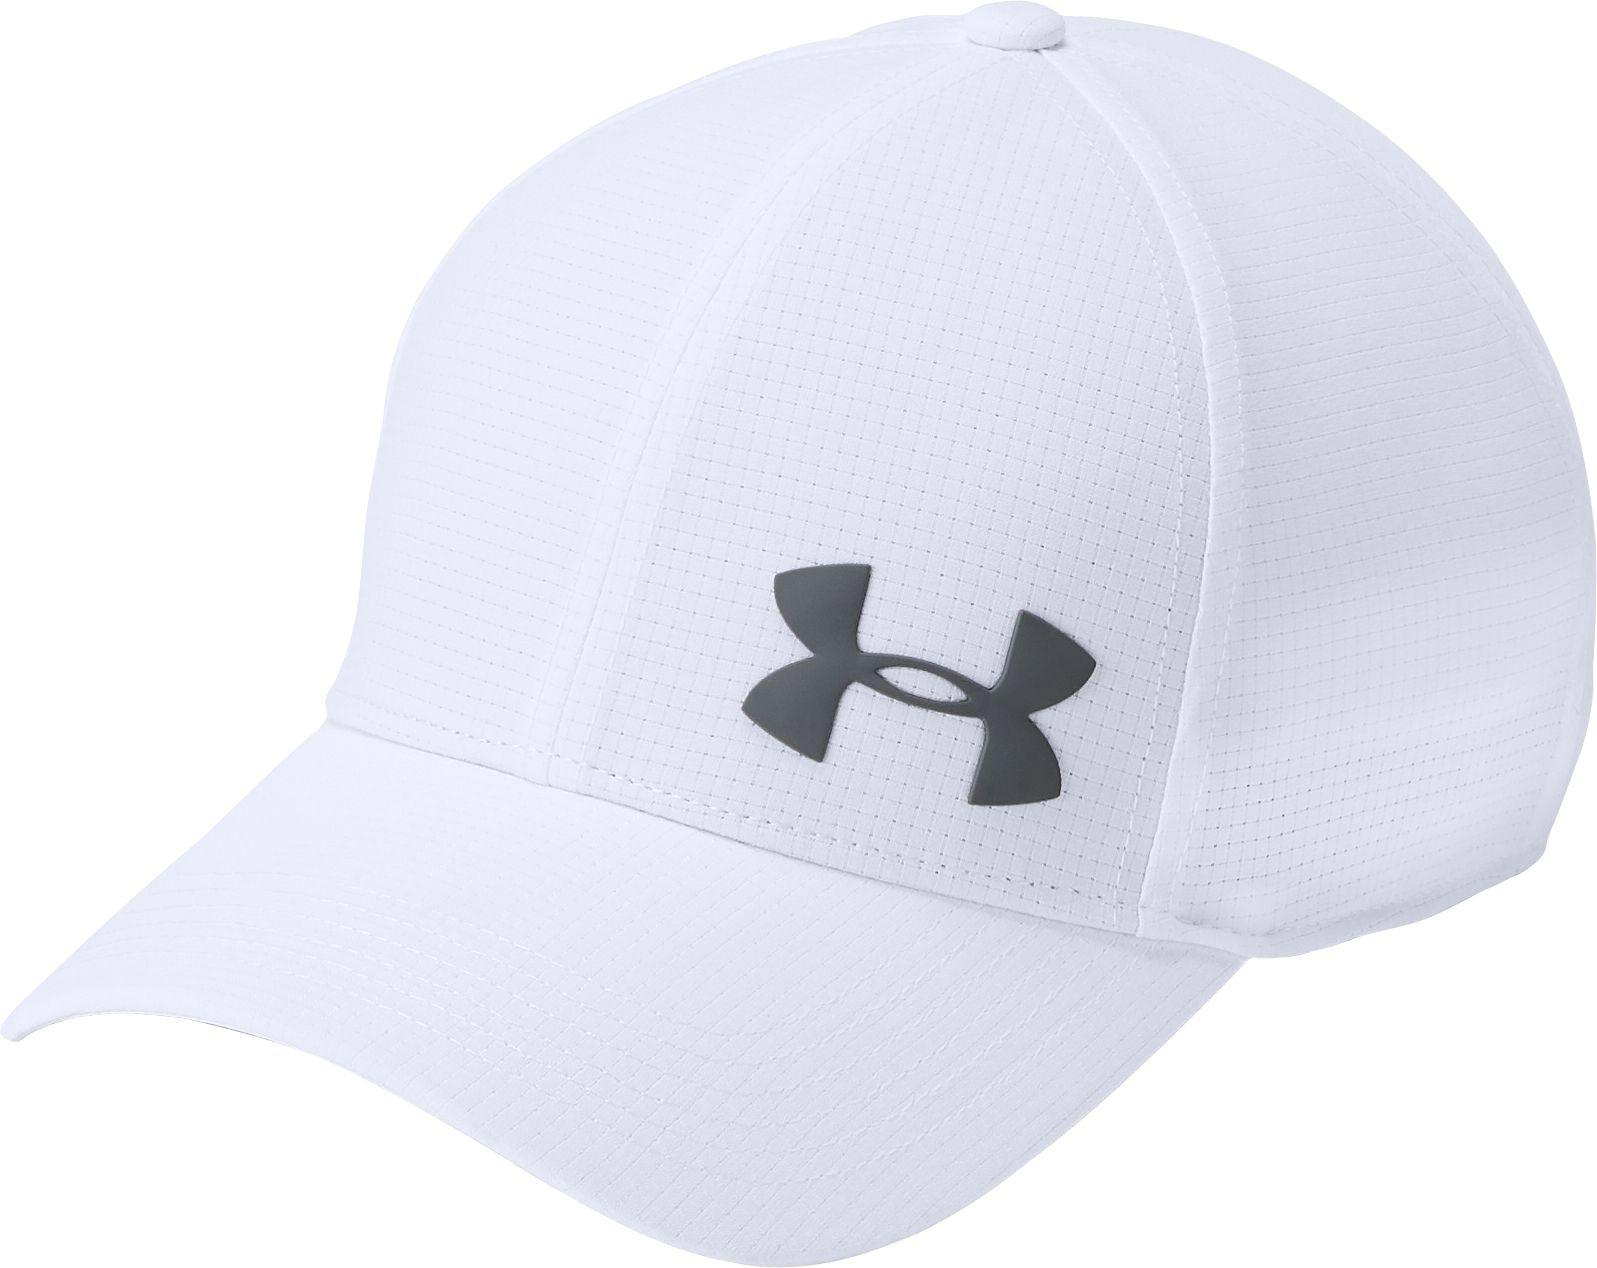 info for bf709 4012d View fullscreen. Under Armour - White Airvent Core Hat for Men - Lyst